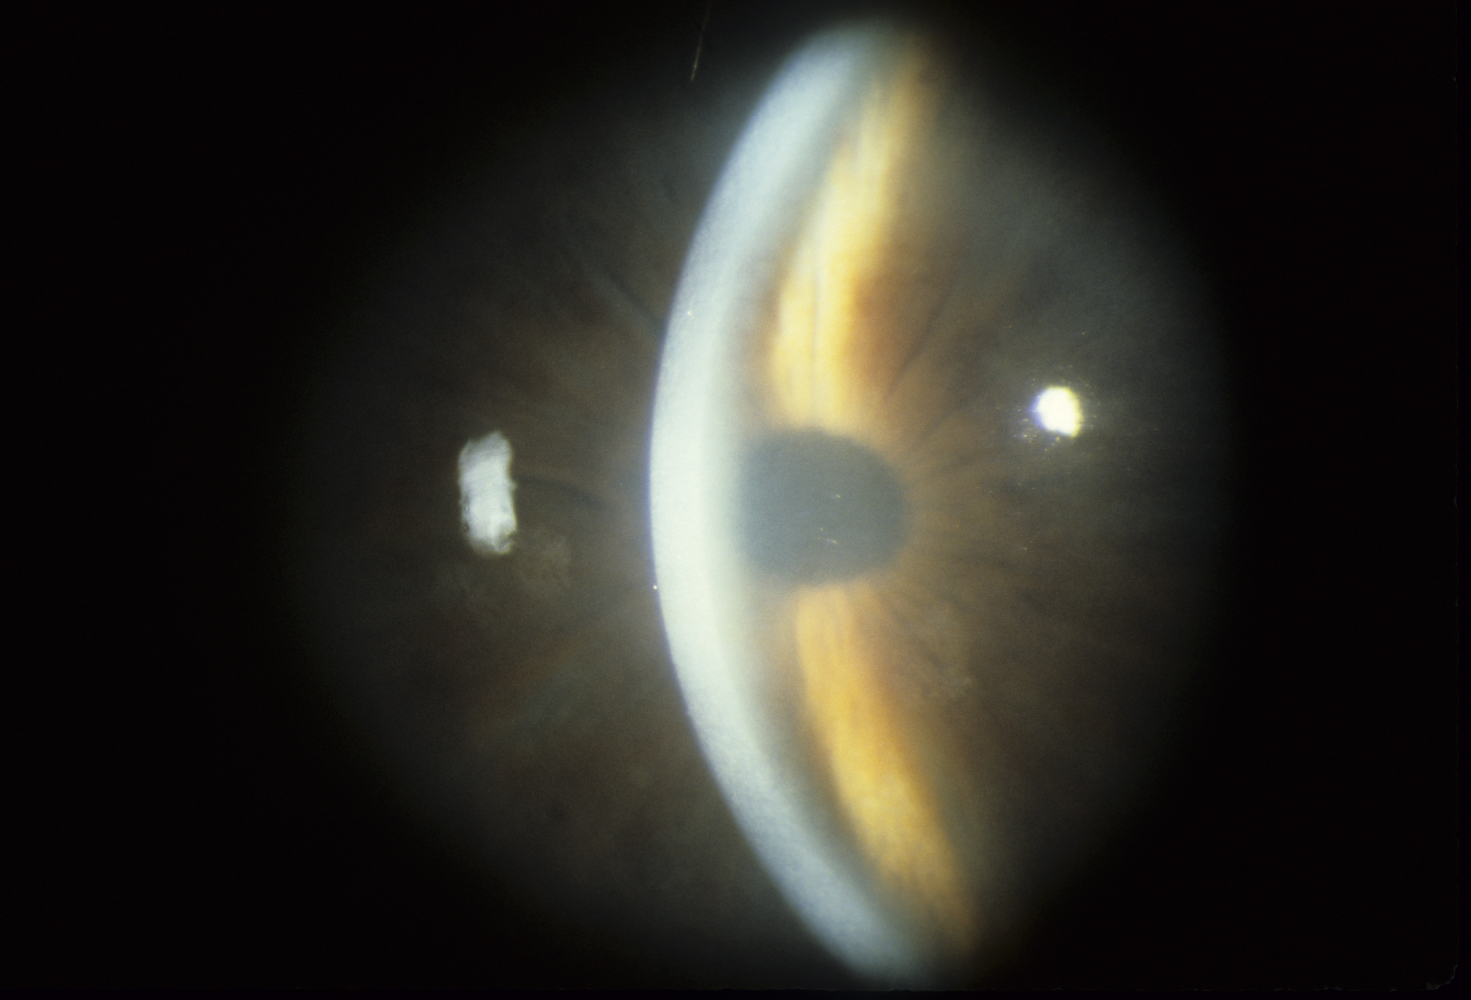 Edema of the cornea